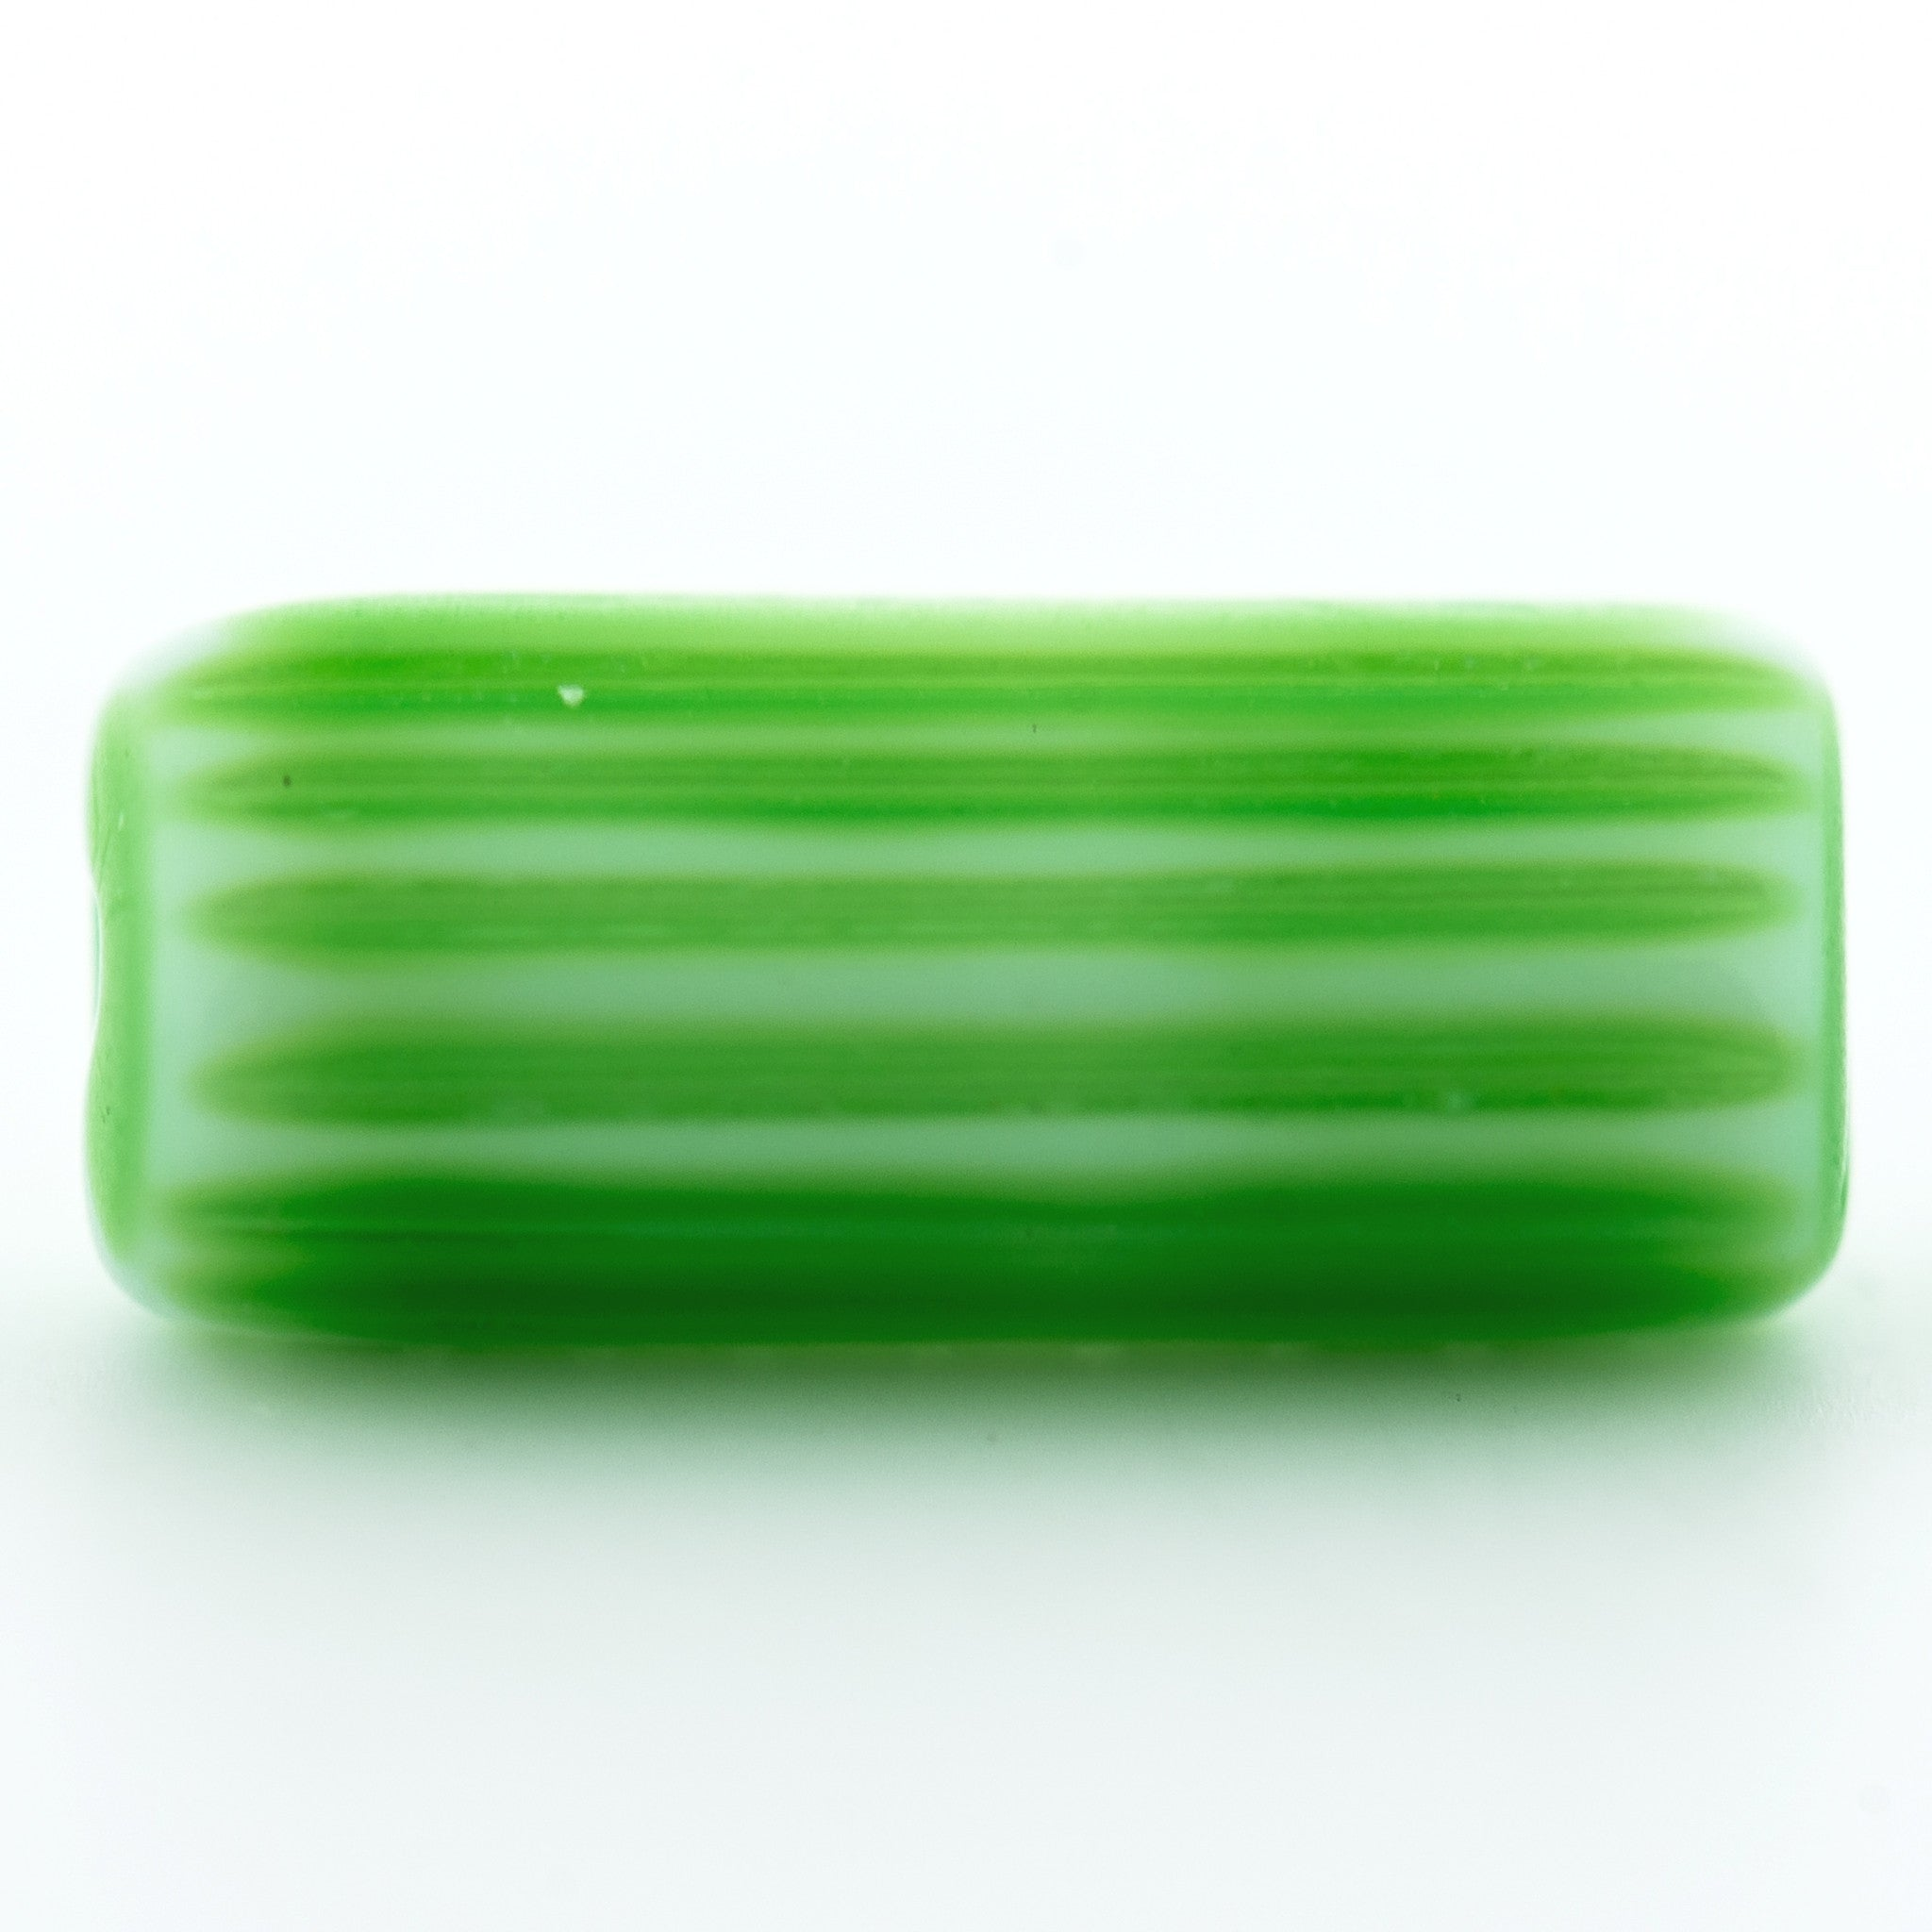 15X6MM Green Glass Tube Bead (36 pieces)